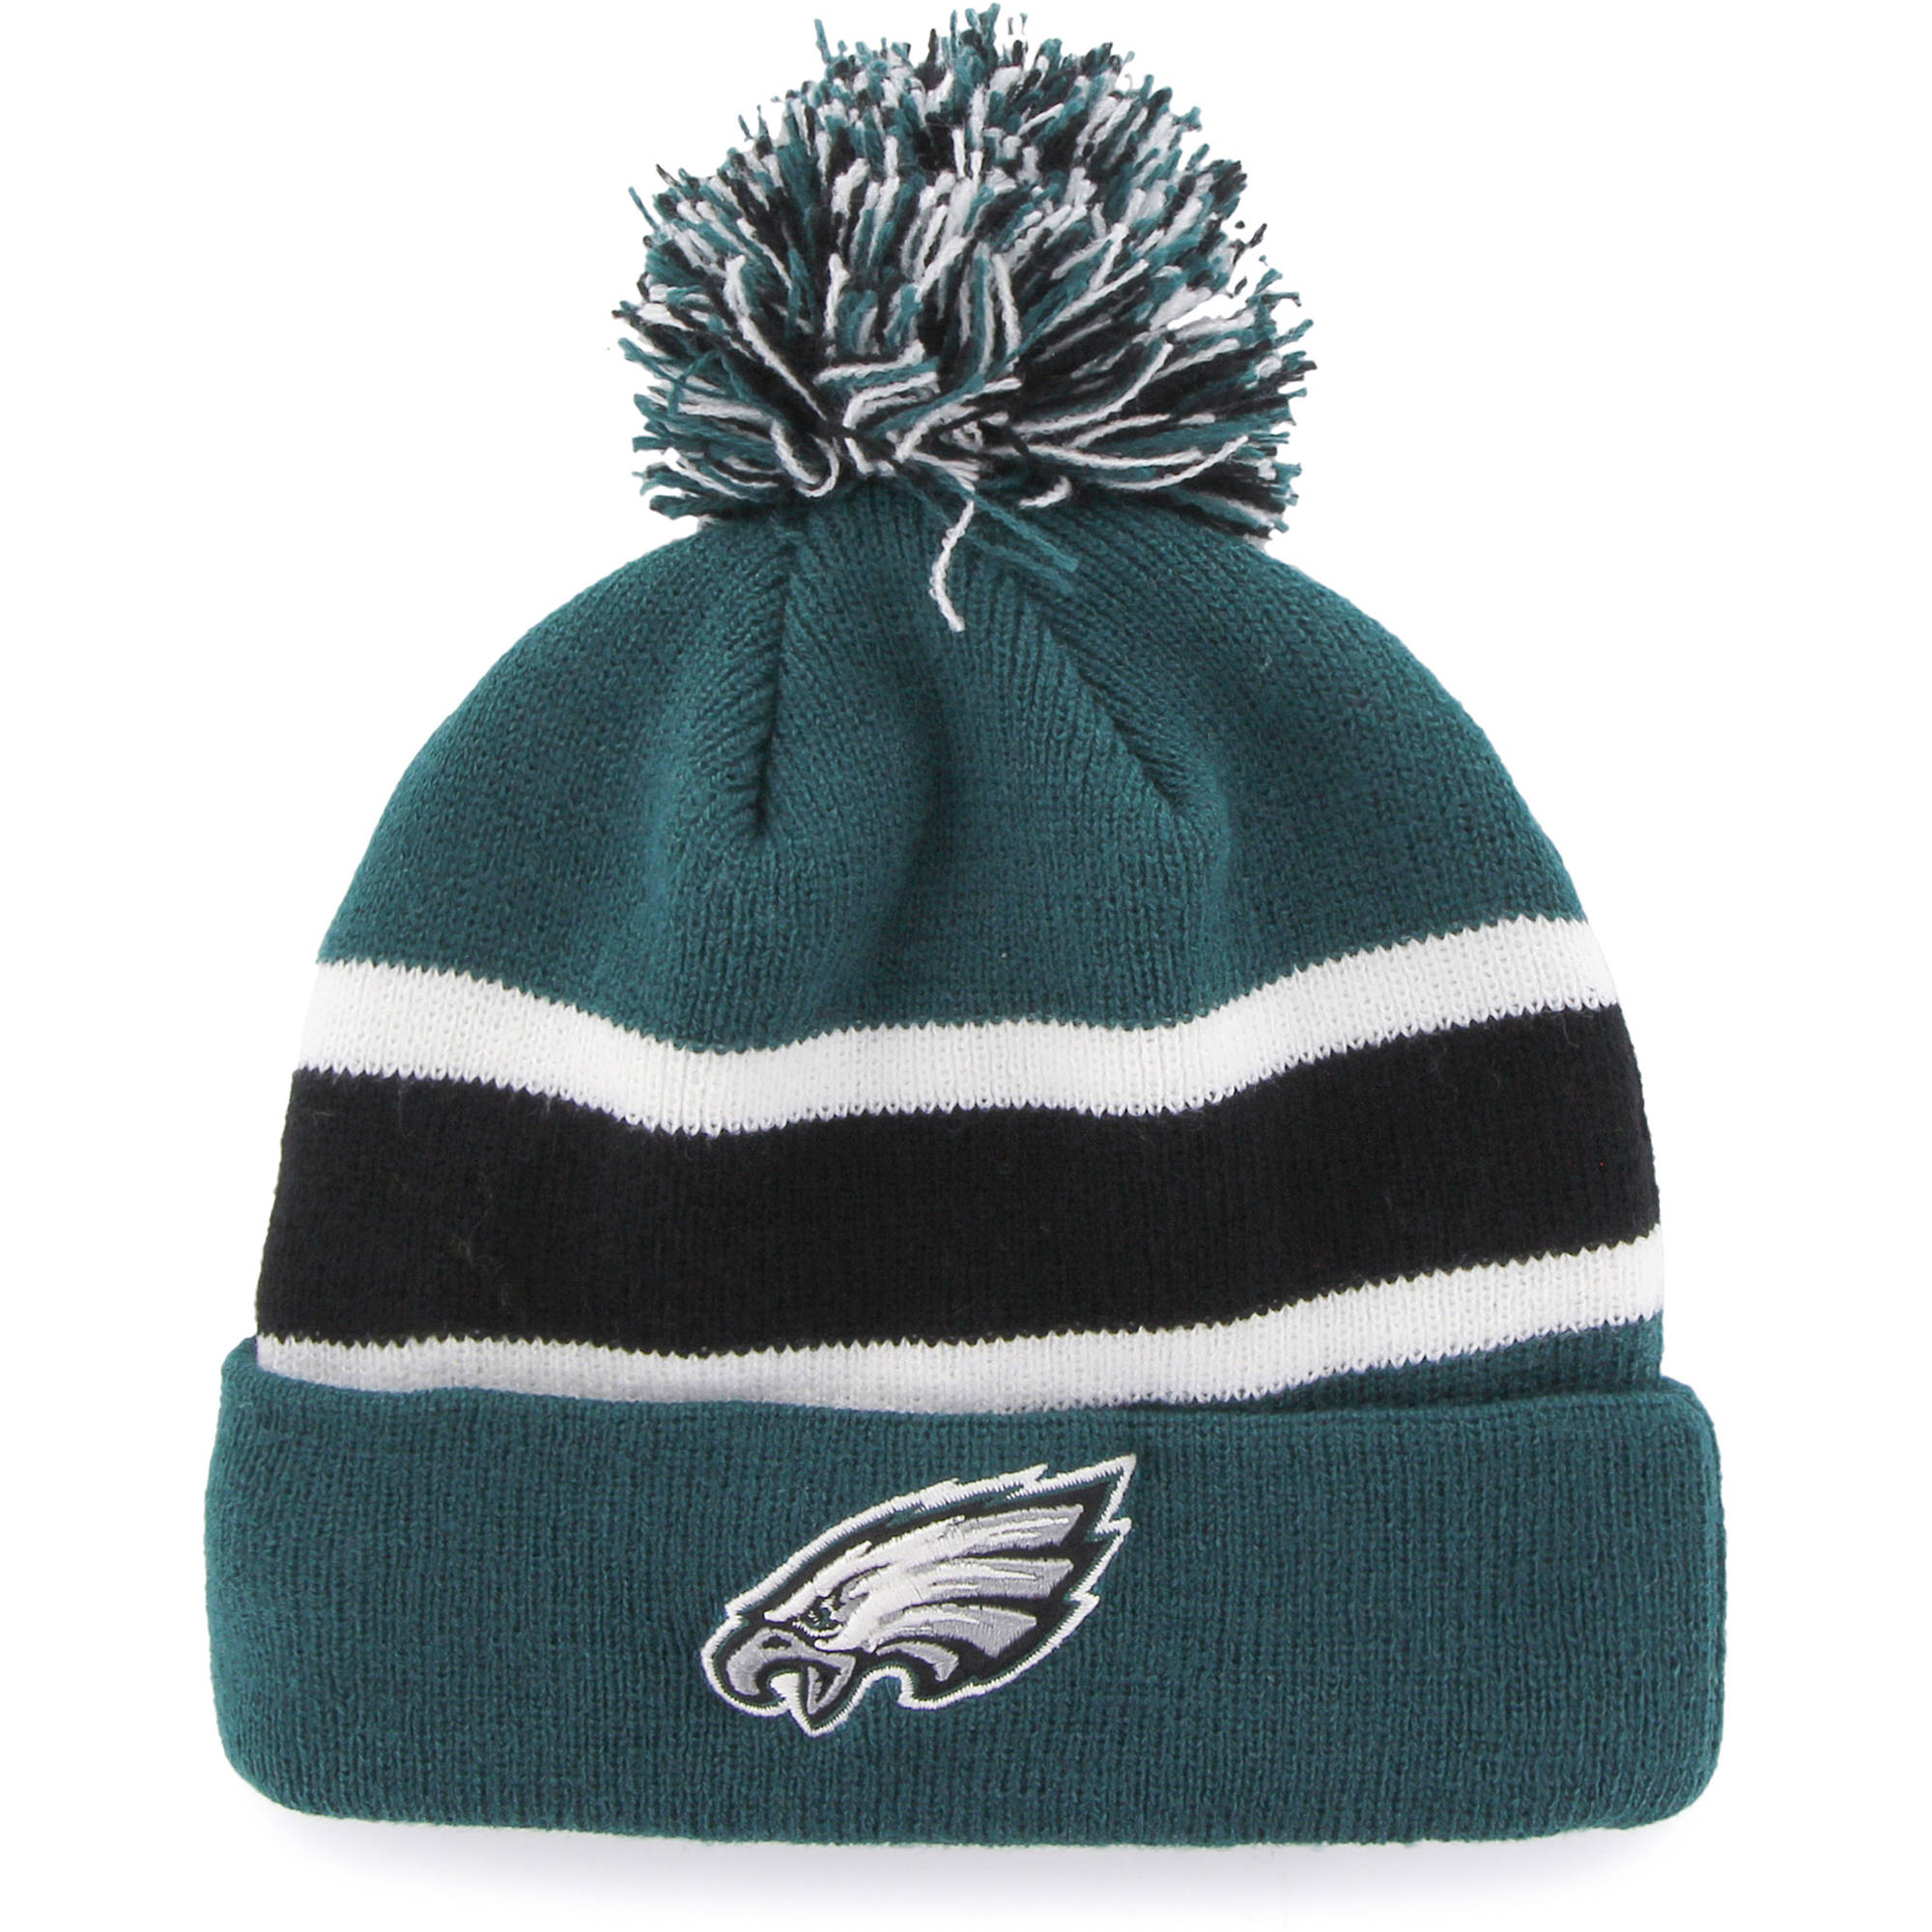 Fan Favorites F-MBRKW24ACE-PG OSF NFL Philadelphia Eagles Breakaway Beanie with Pom - One Size